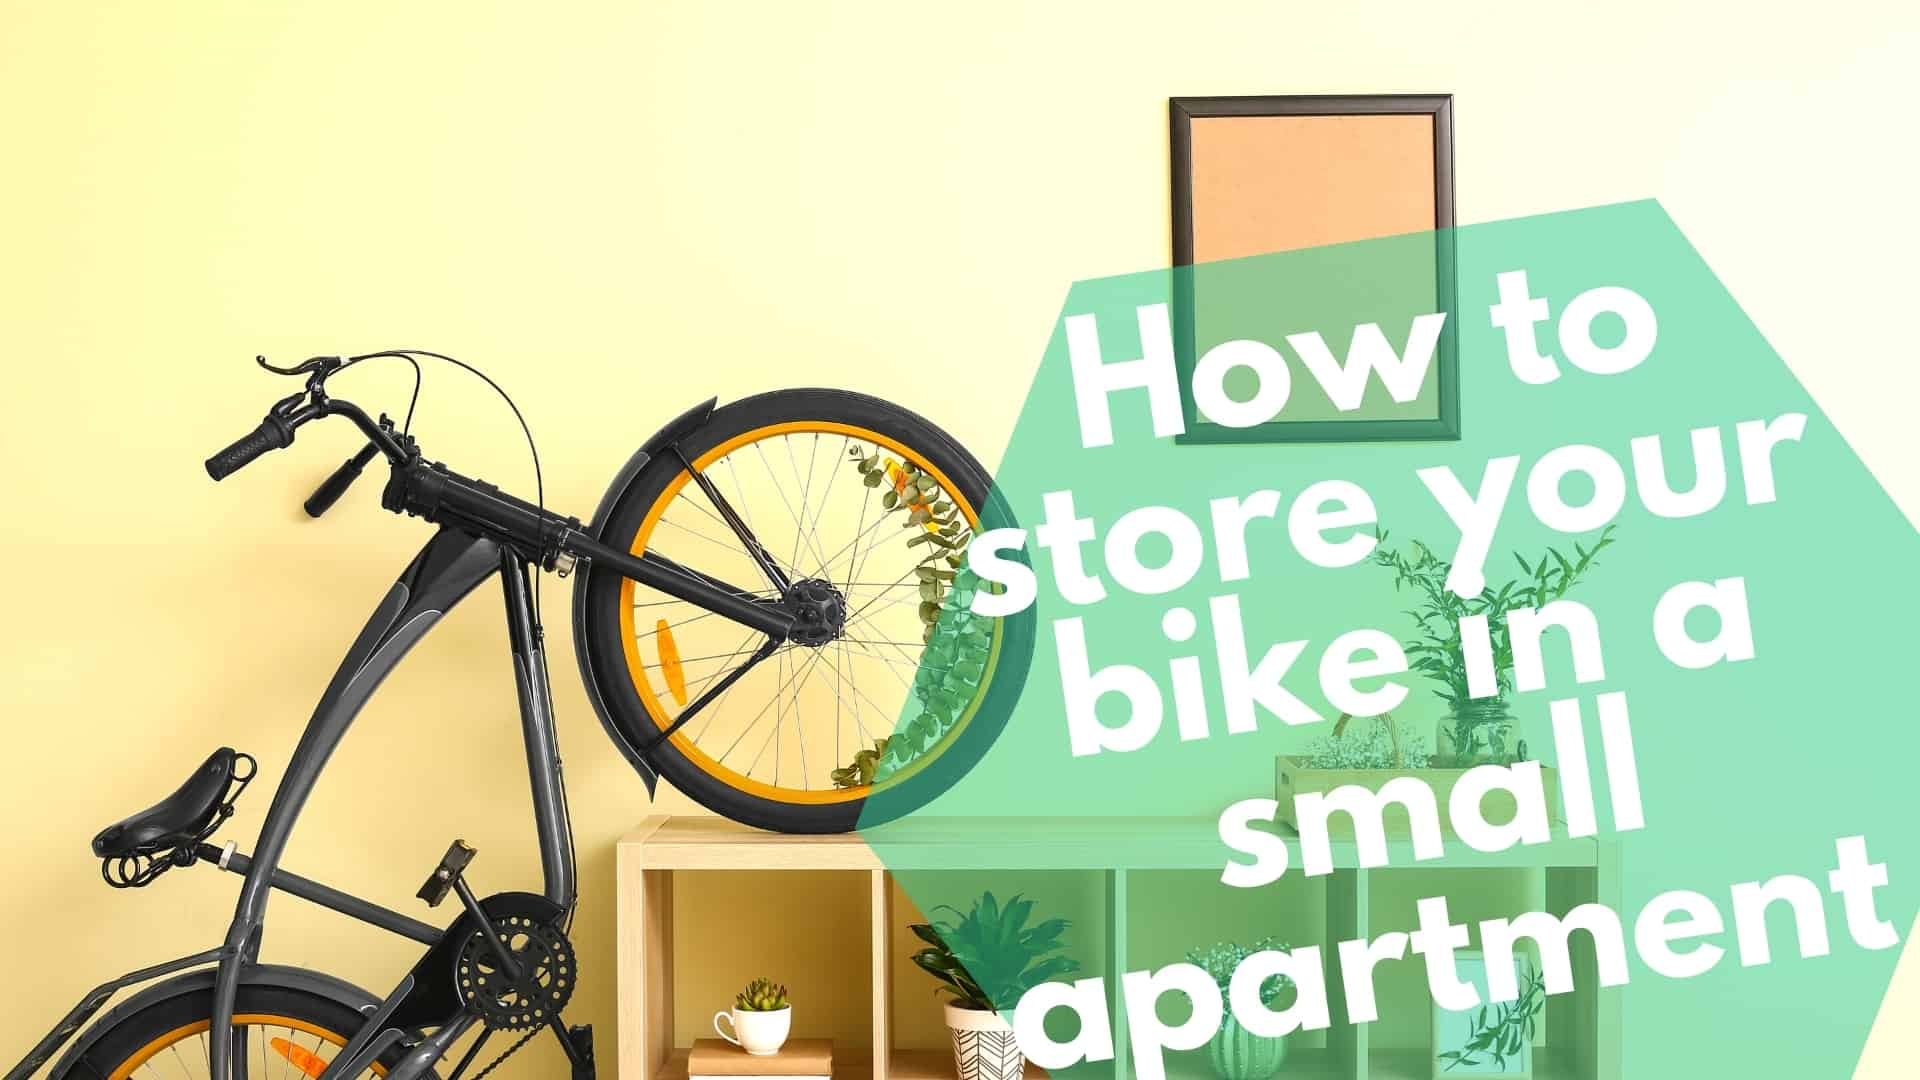 How to store your bike in a small apartment